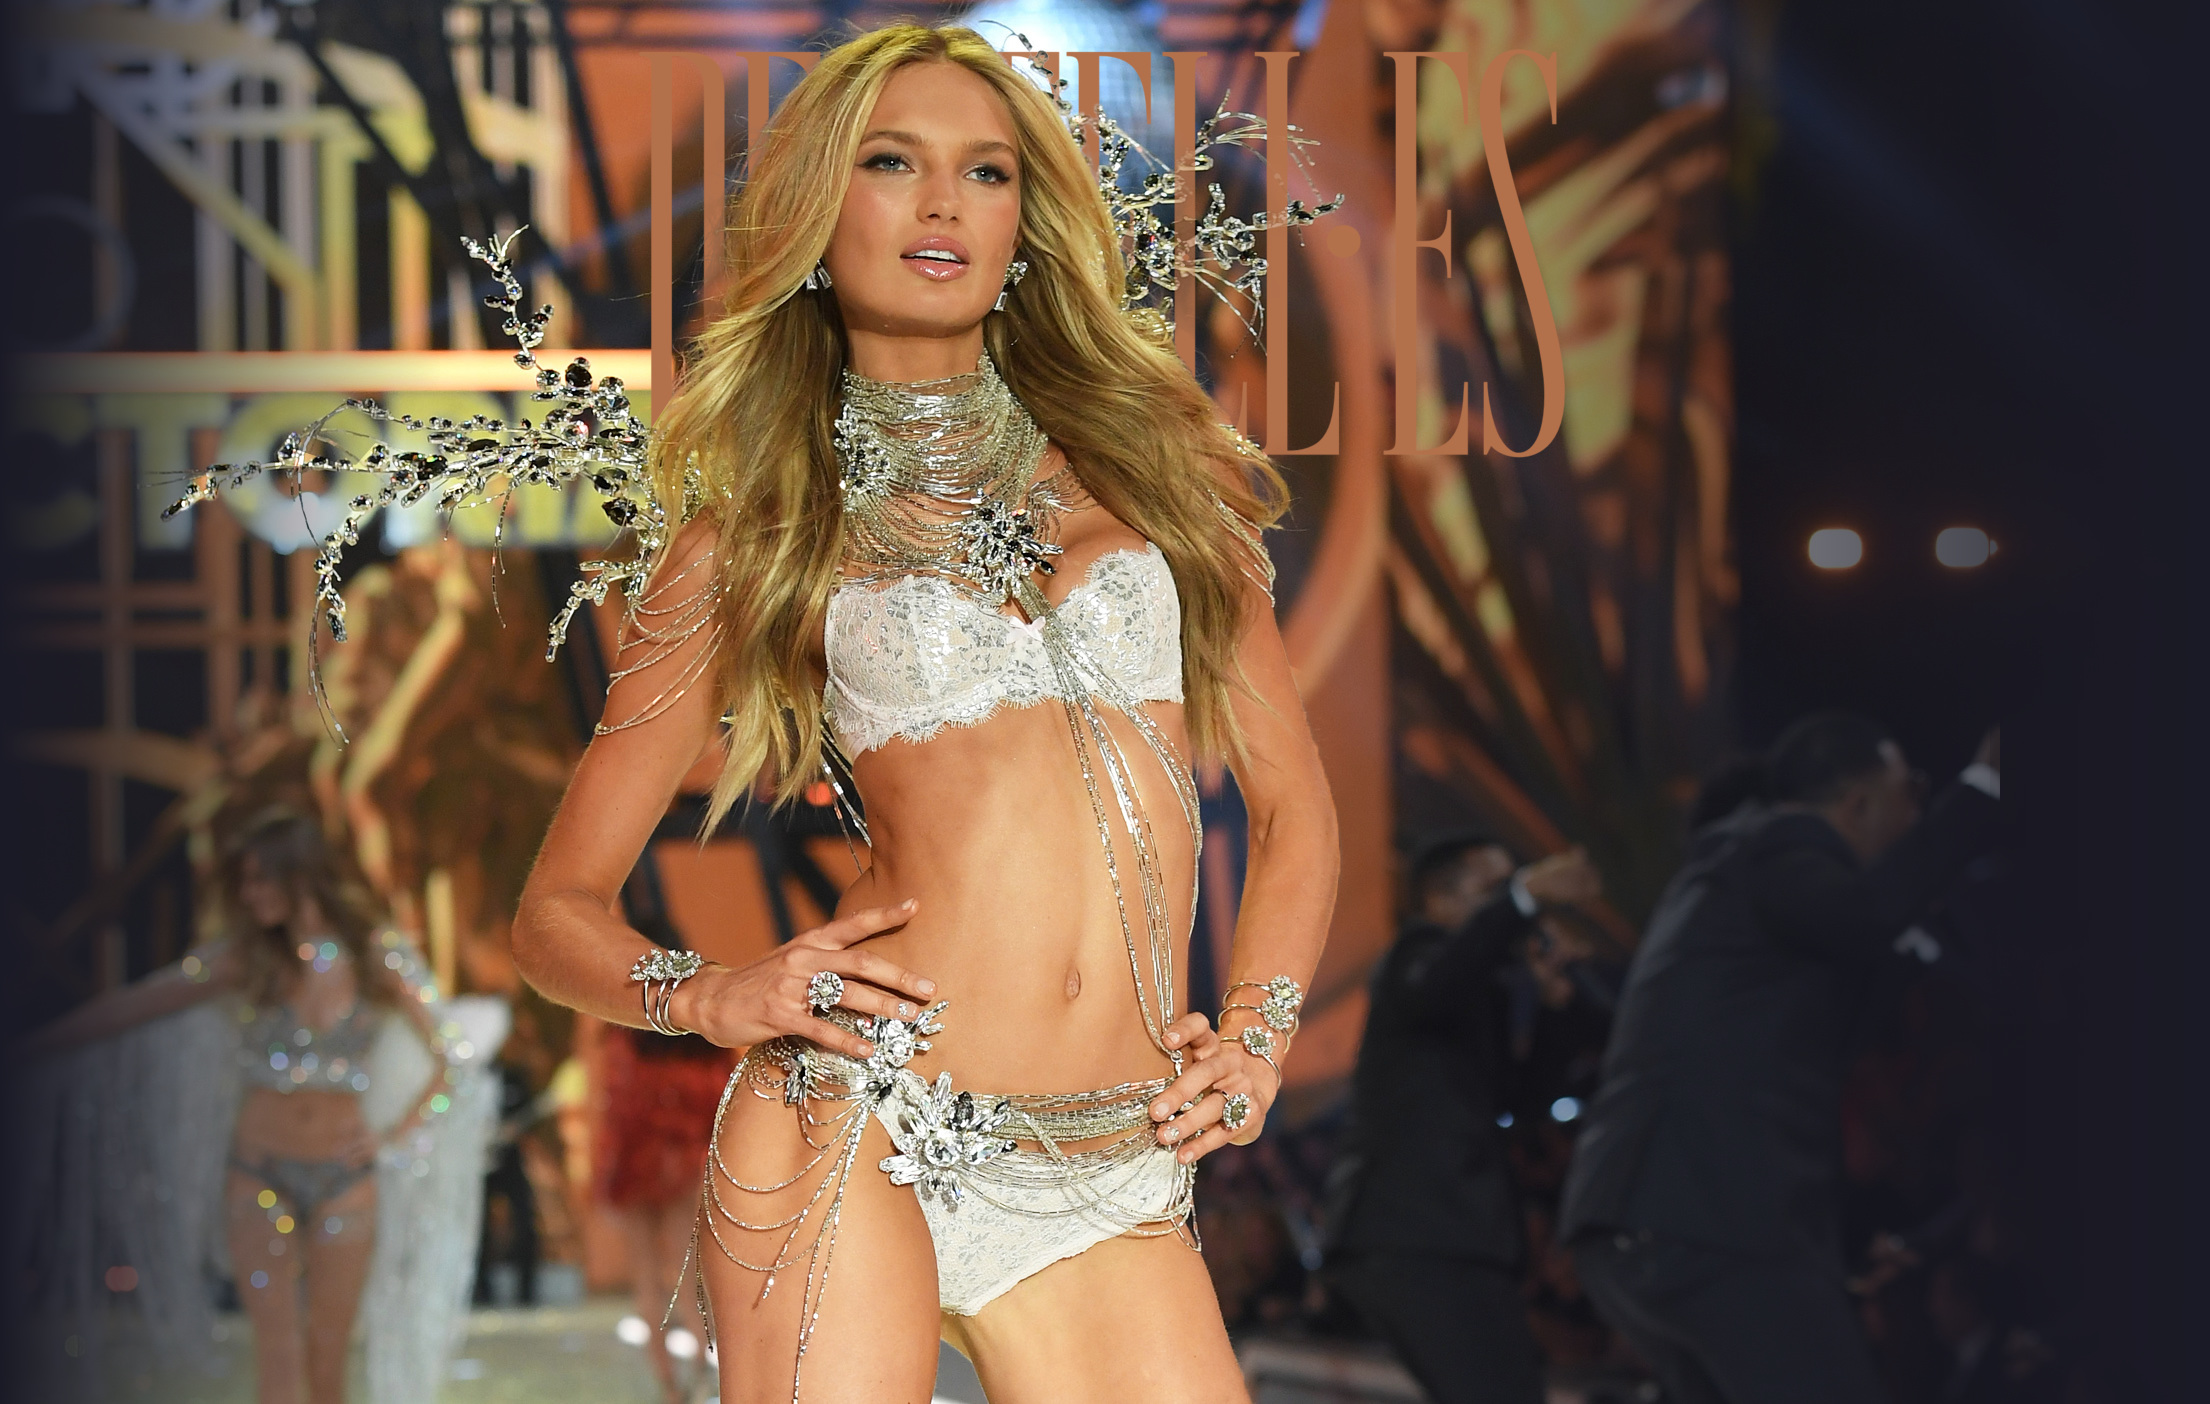 victorias secret doc 174 reviews of victorias secret i normally don't write reviews for retail stores, but i had to share my awesome experience i went in, completely lost, not even sure where to start, considering i've never been to this location, and its a.